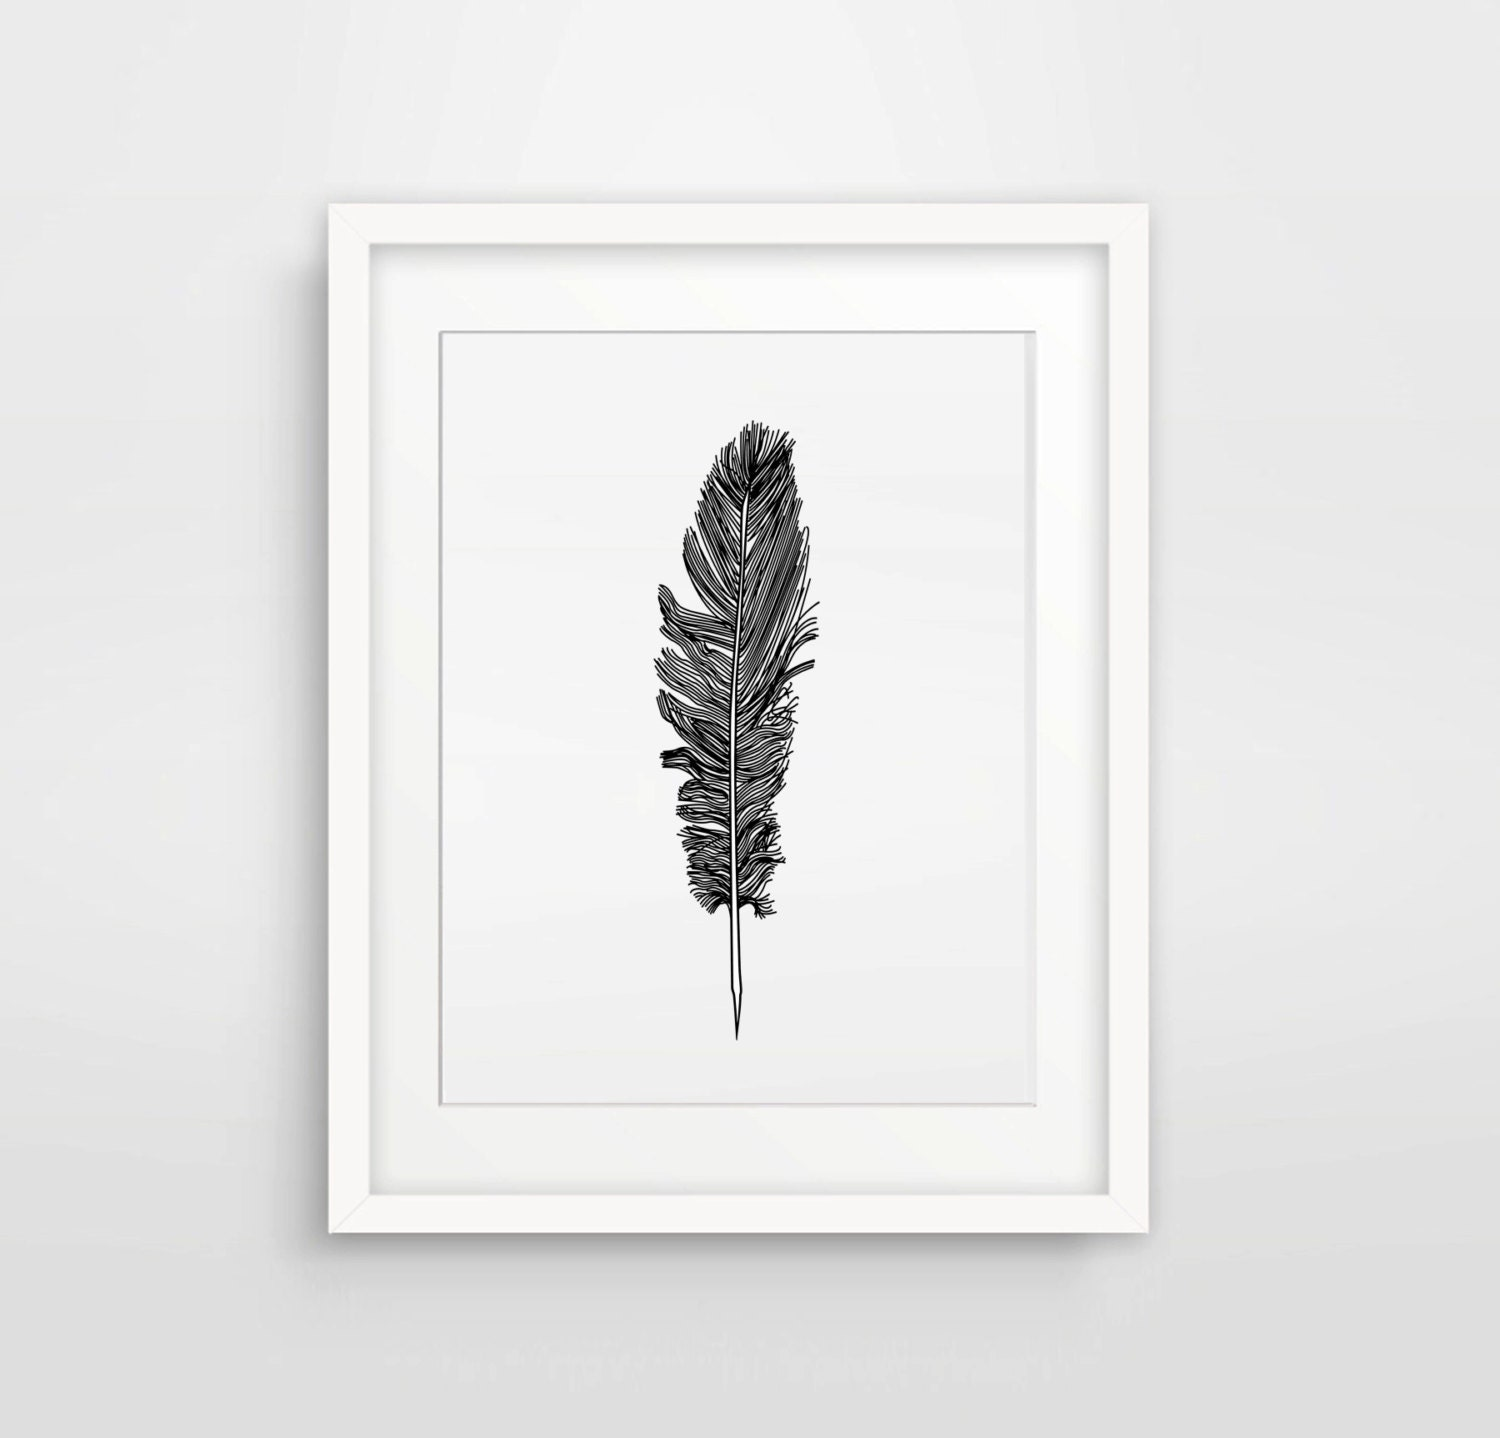 Wall Decor Silvers: Silver Wall Print Wall Decor Black Feather Feather Art